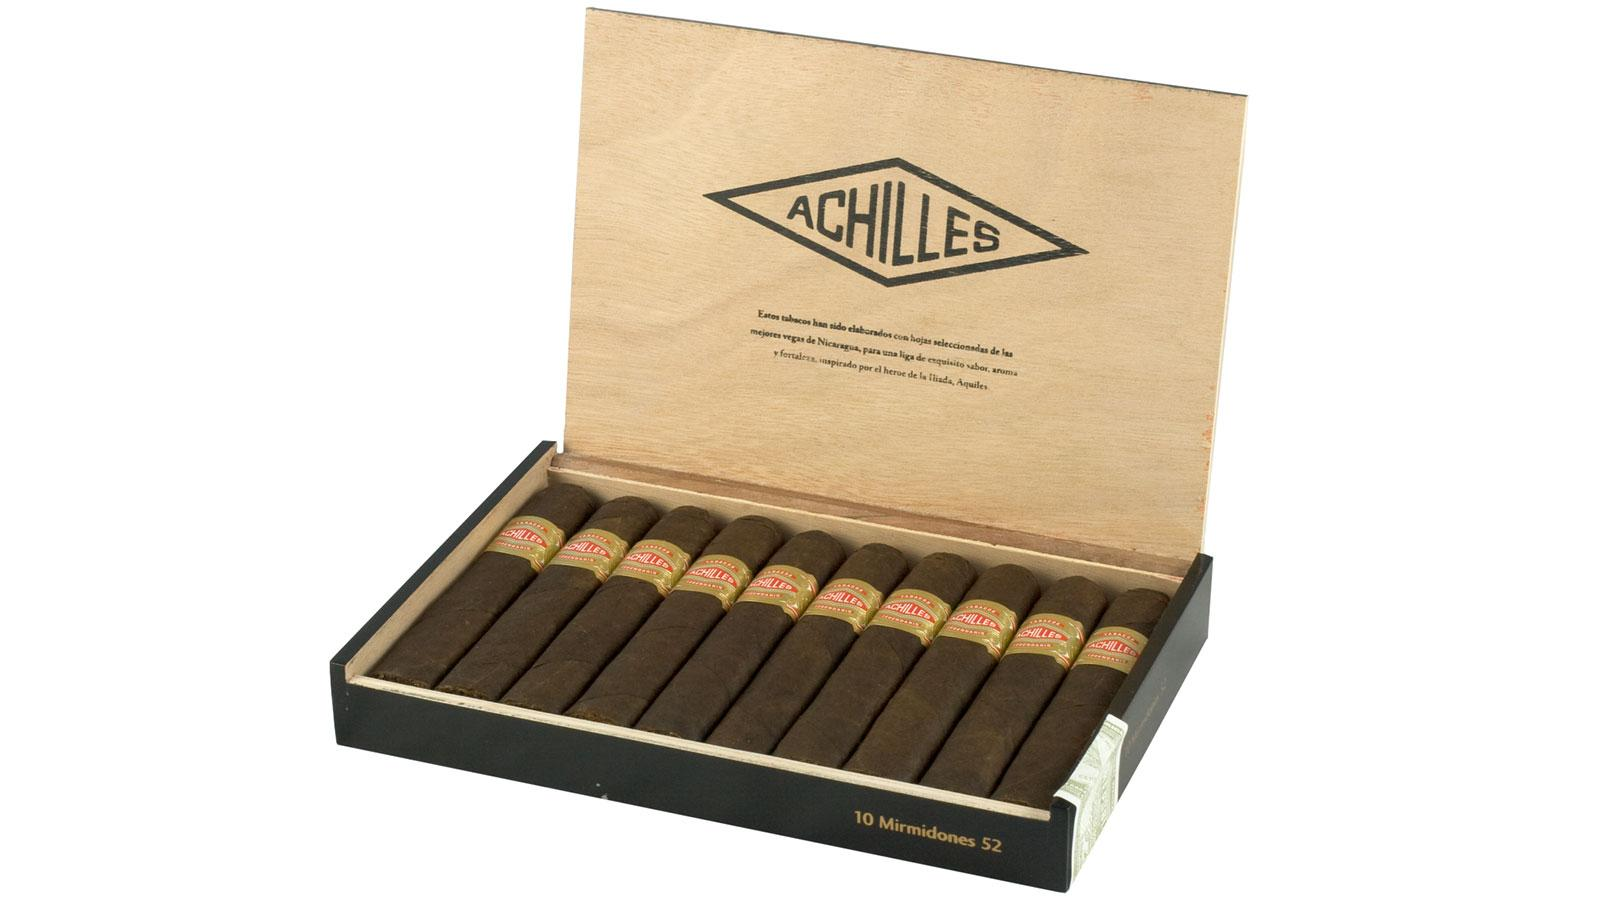 Achilles Mirmidones From Curivari Ships To Retail